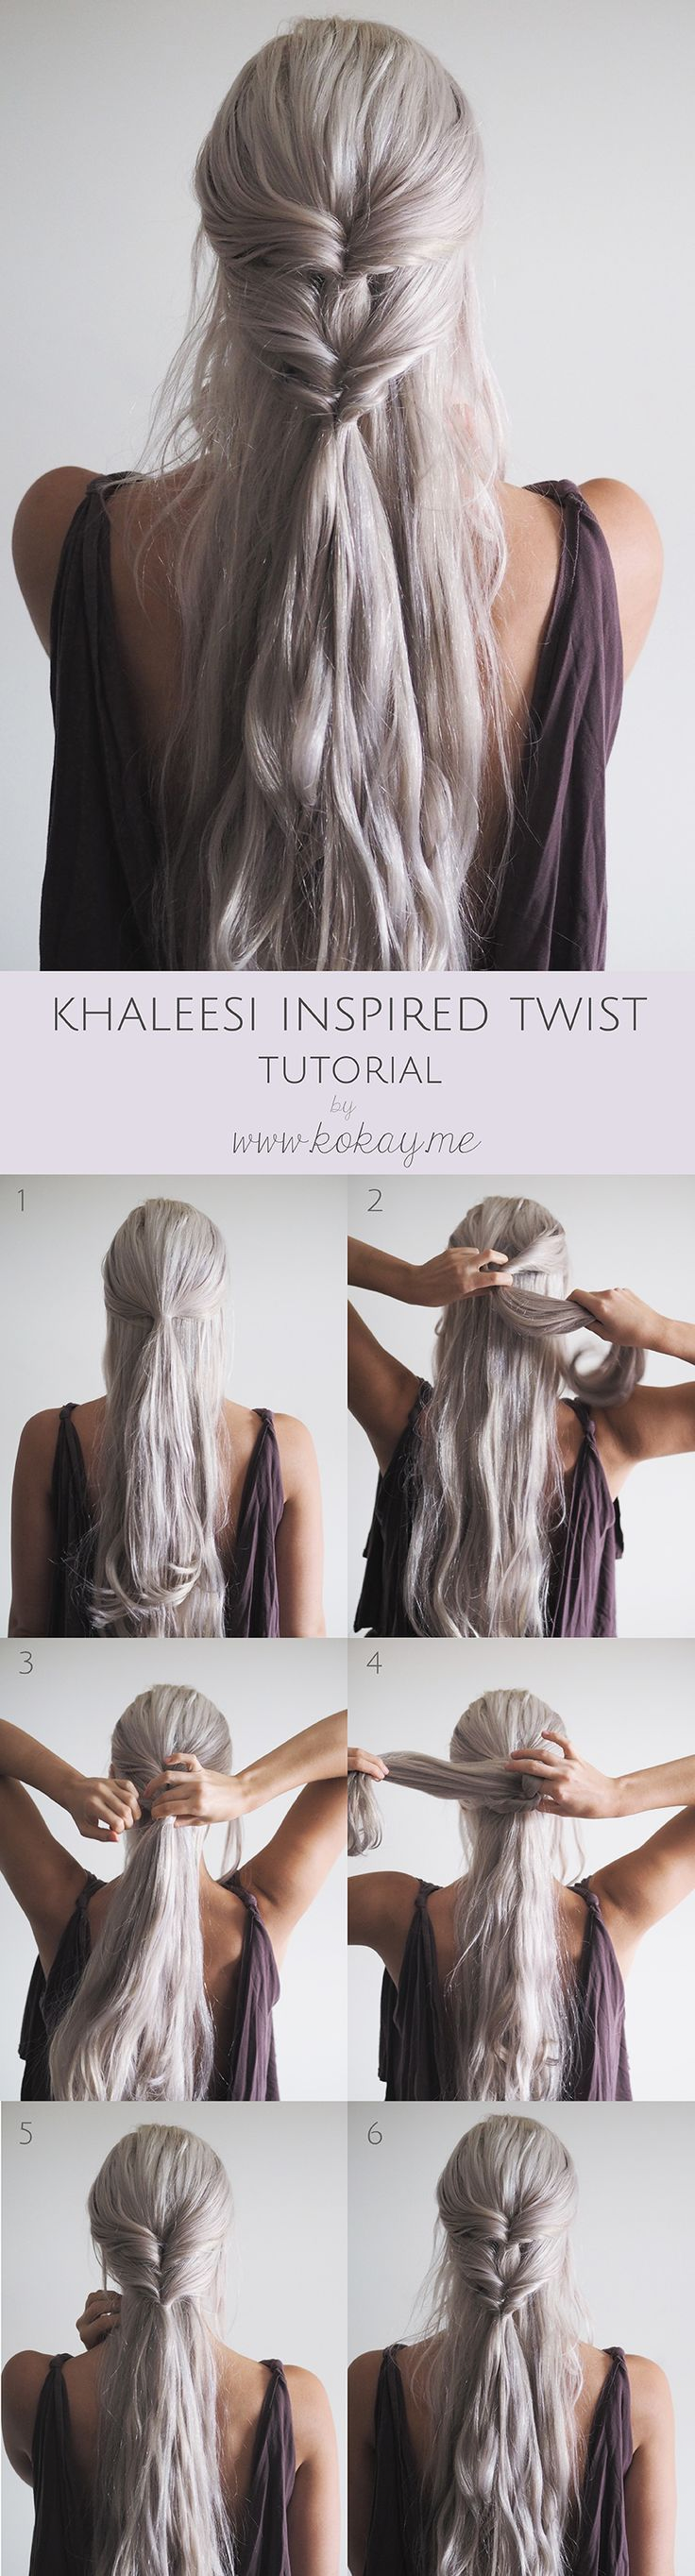 best hair inspo images on pinterest easy hairstyle hair dos